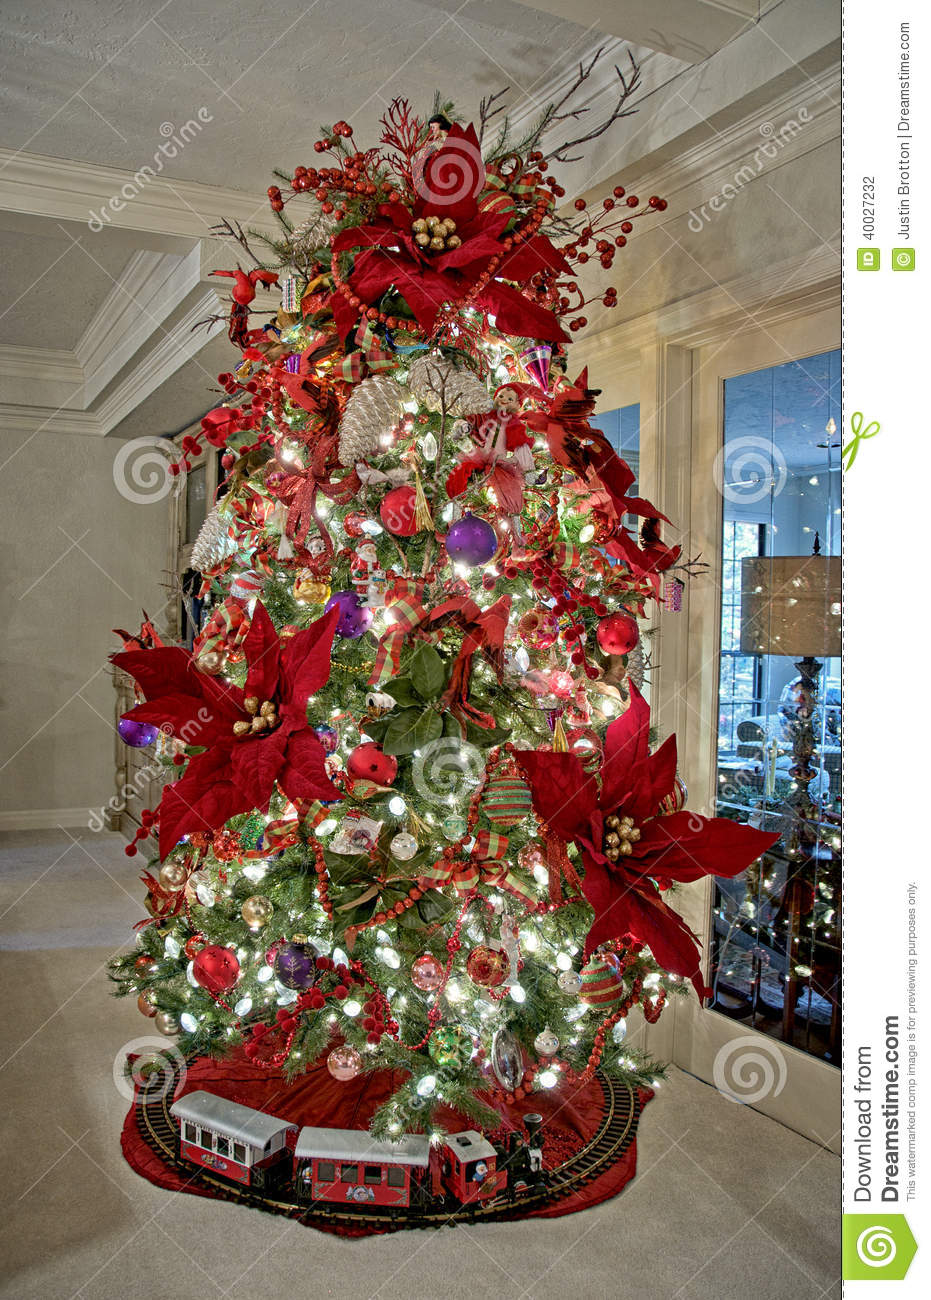 this is a christmas tree decorated with ornaments with poinsettia flowers